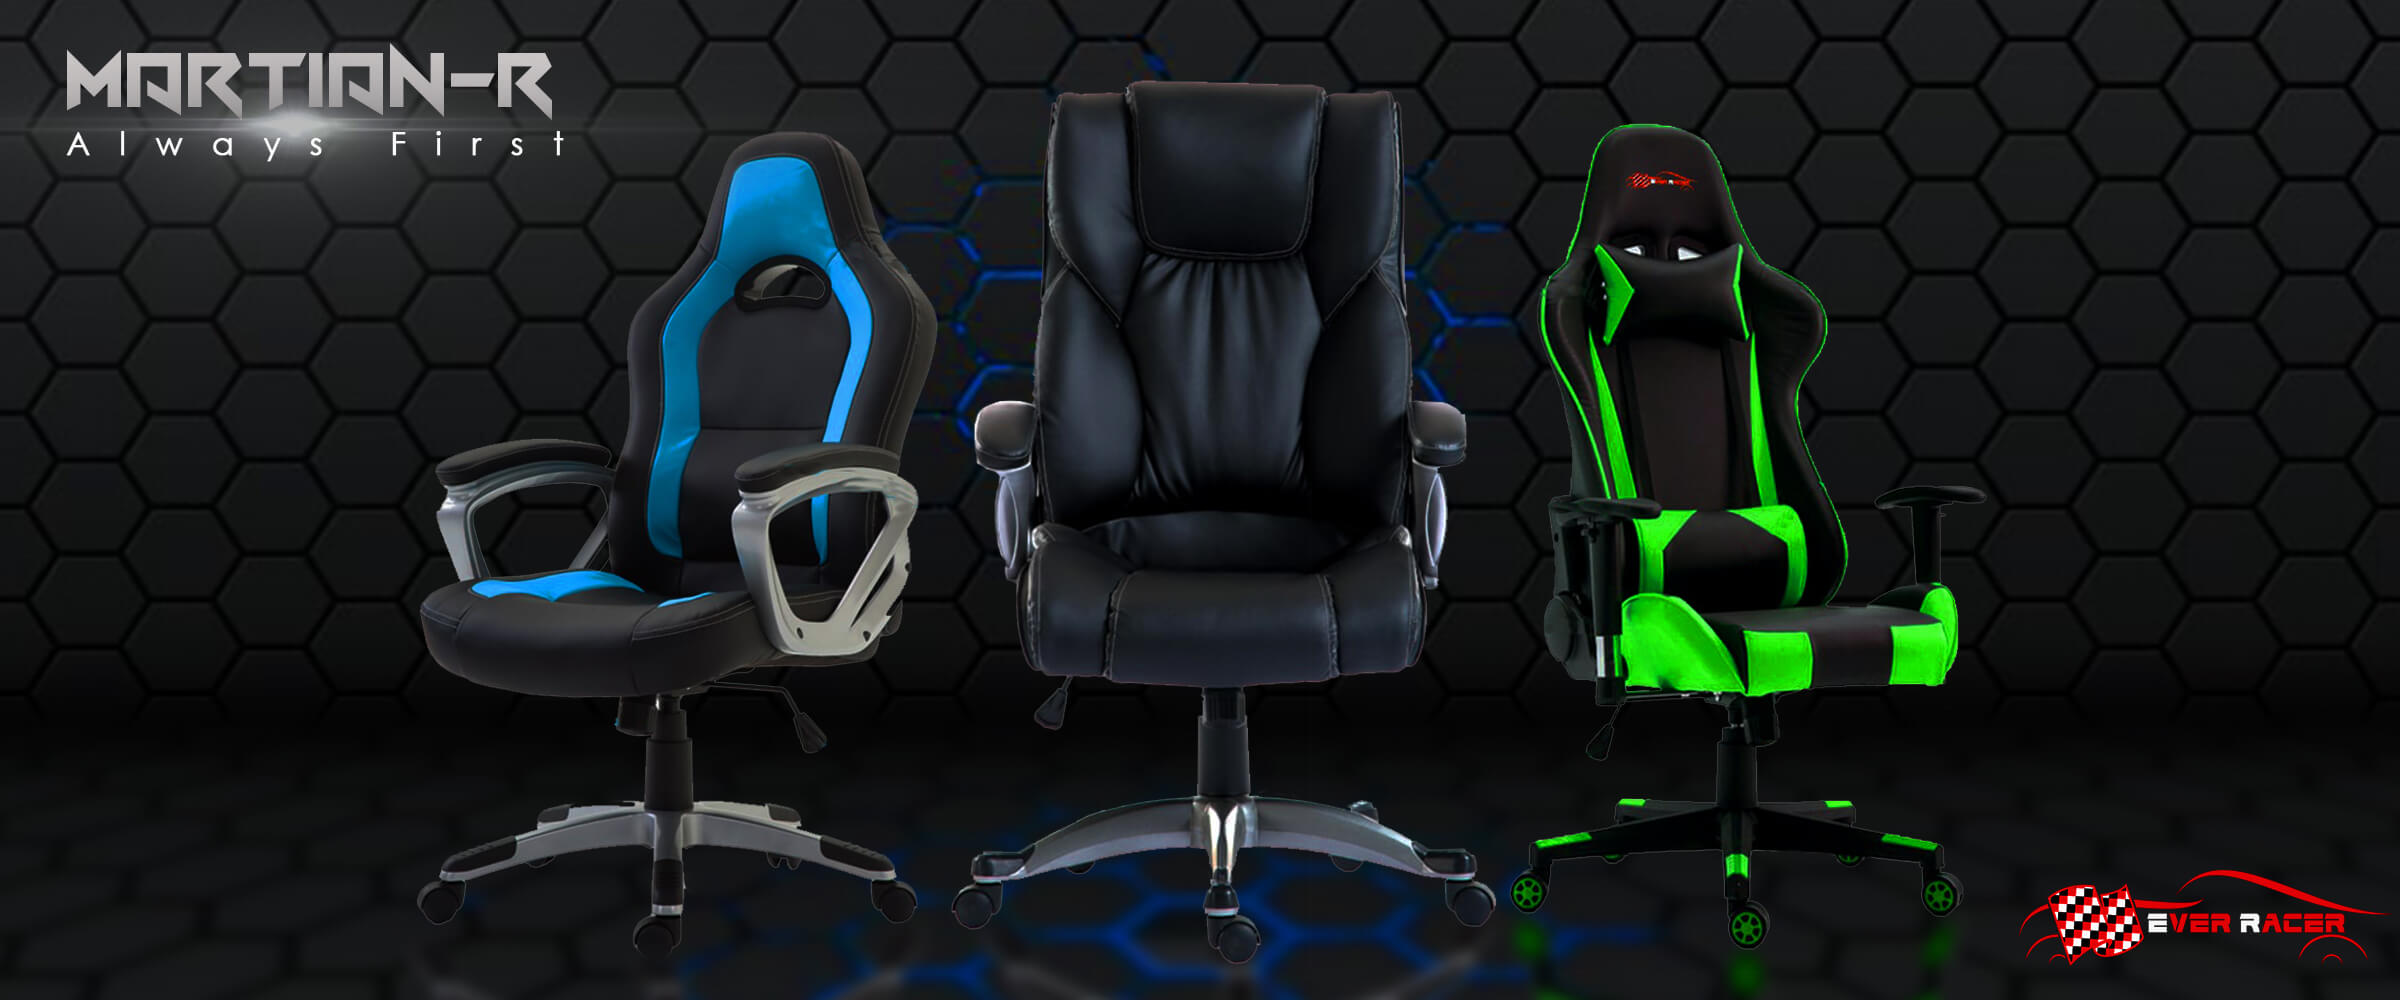 everracer chair